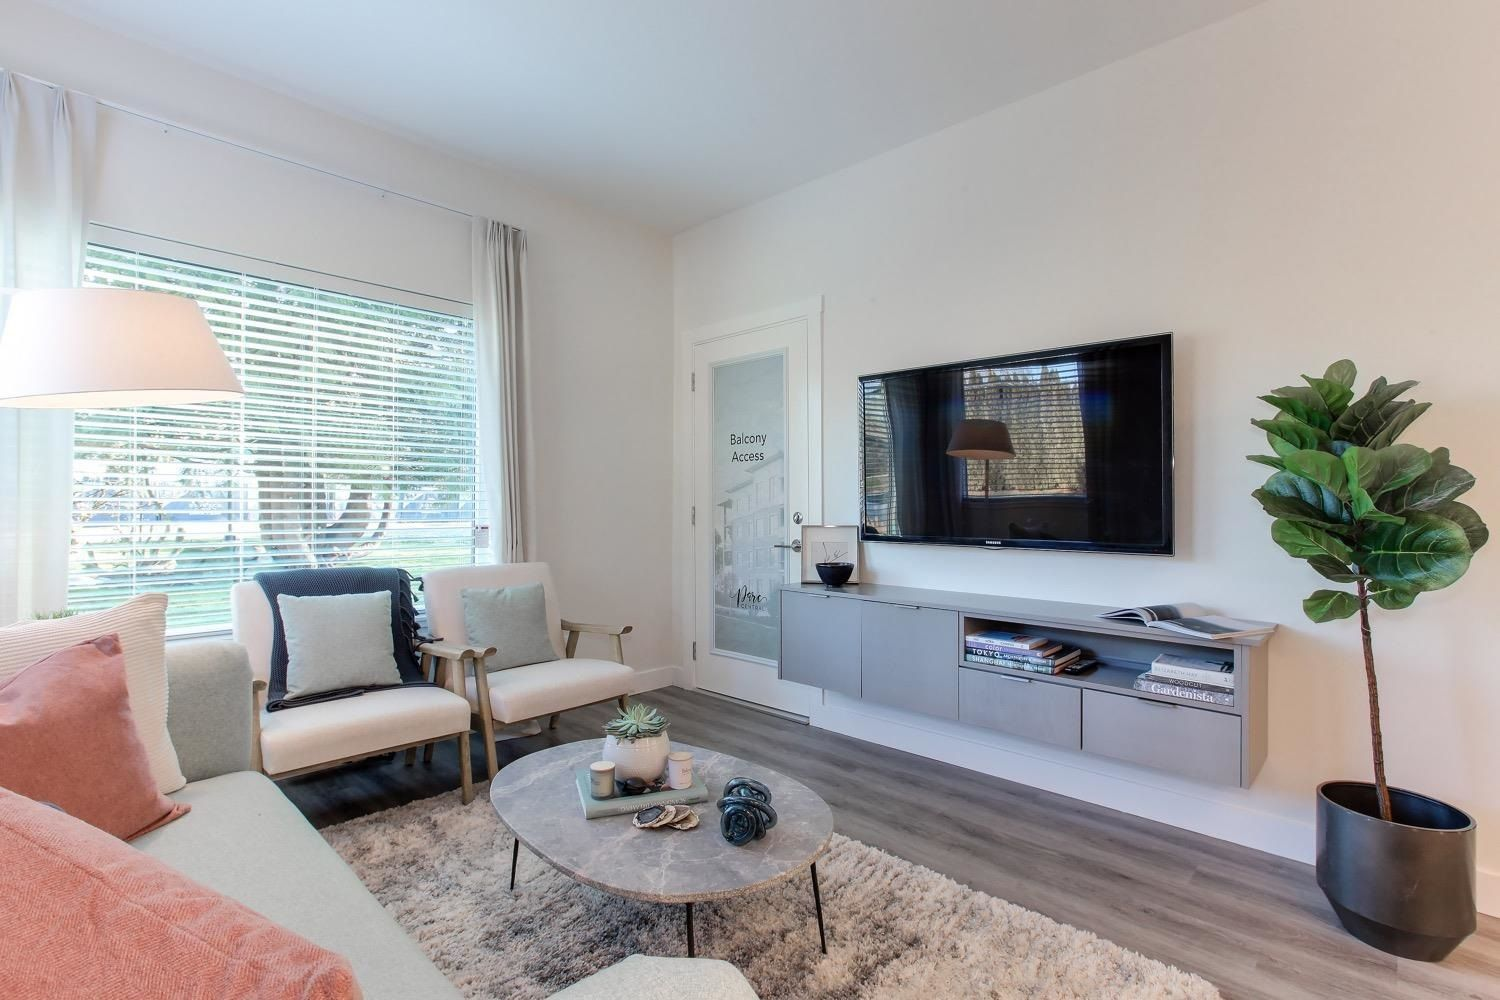 """Main Photo: 104 20356 72B Avenue in Langley: Willoughby Heights Condo for sale in """"Gala by Essence"""" : MLS®# R2603348"""